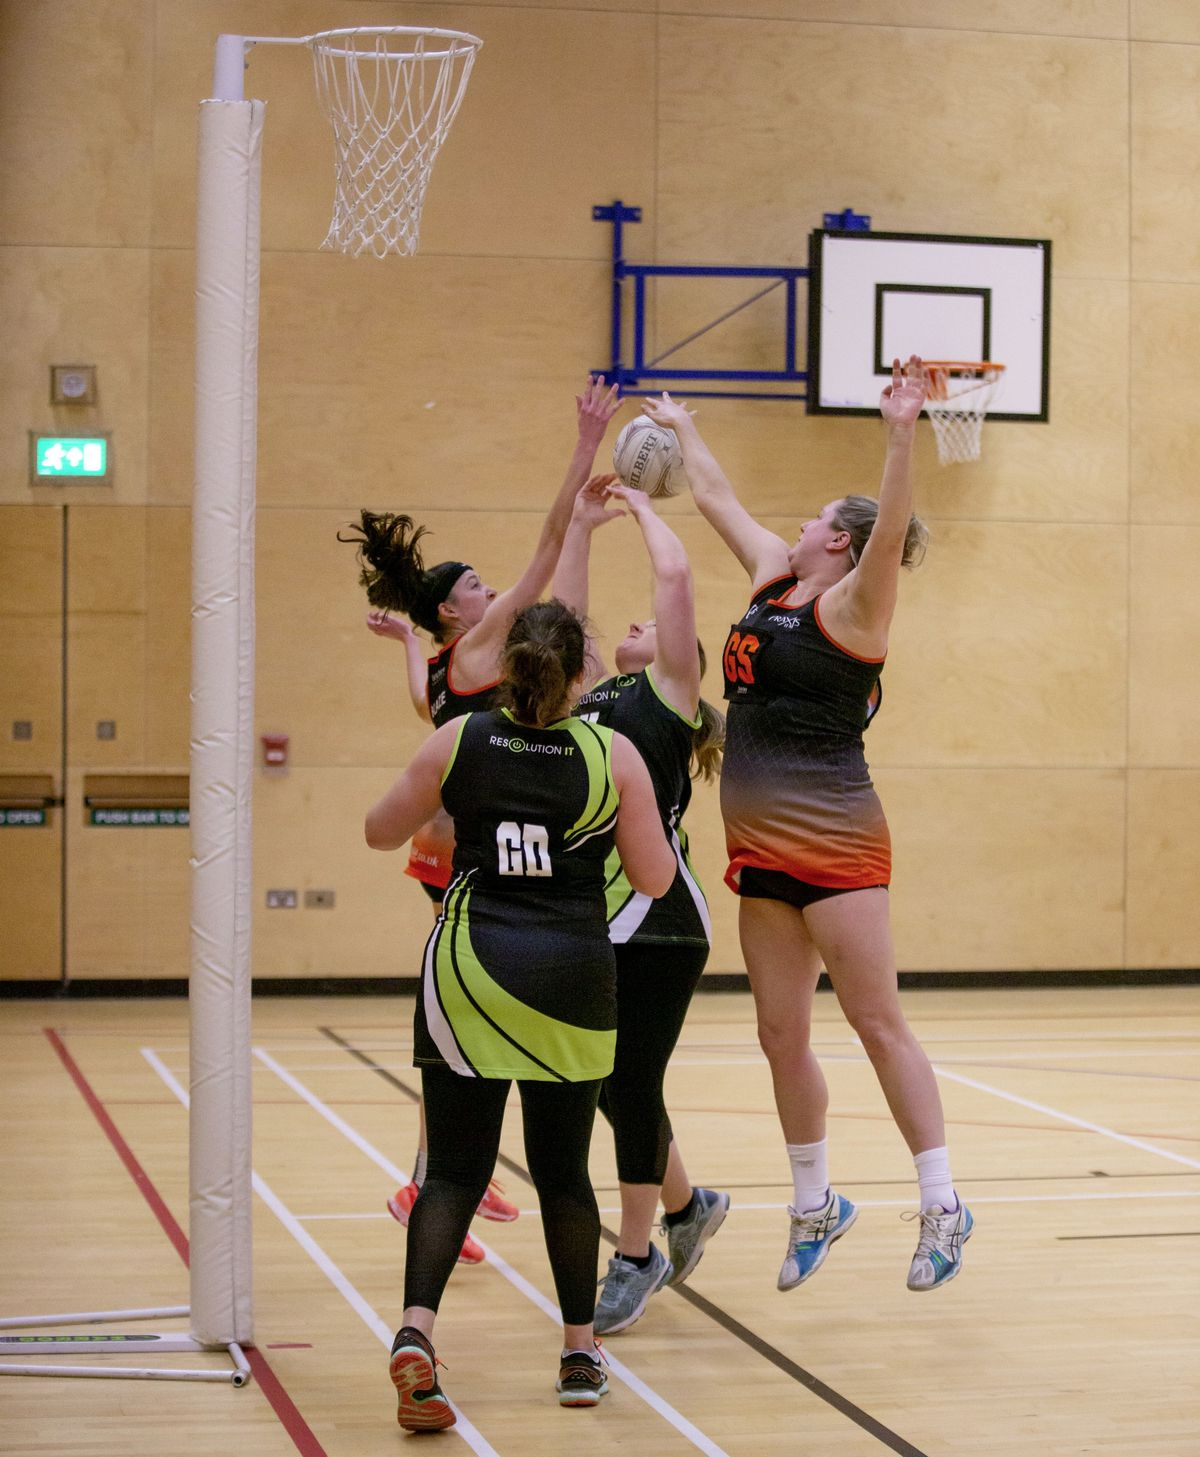 Blaze shooting duo Abbie Greening (far left) and Zola Saunders (far right) both compete for a rebound with GK Lois Batiste. (Picture by Sophie Rabey, 29408215)